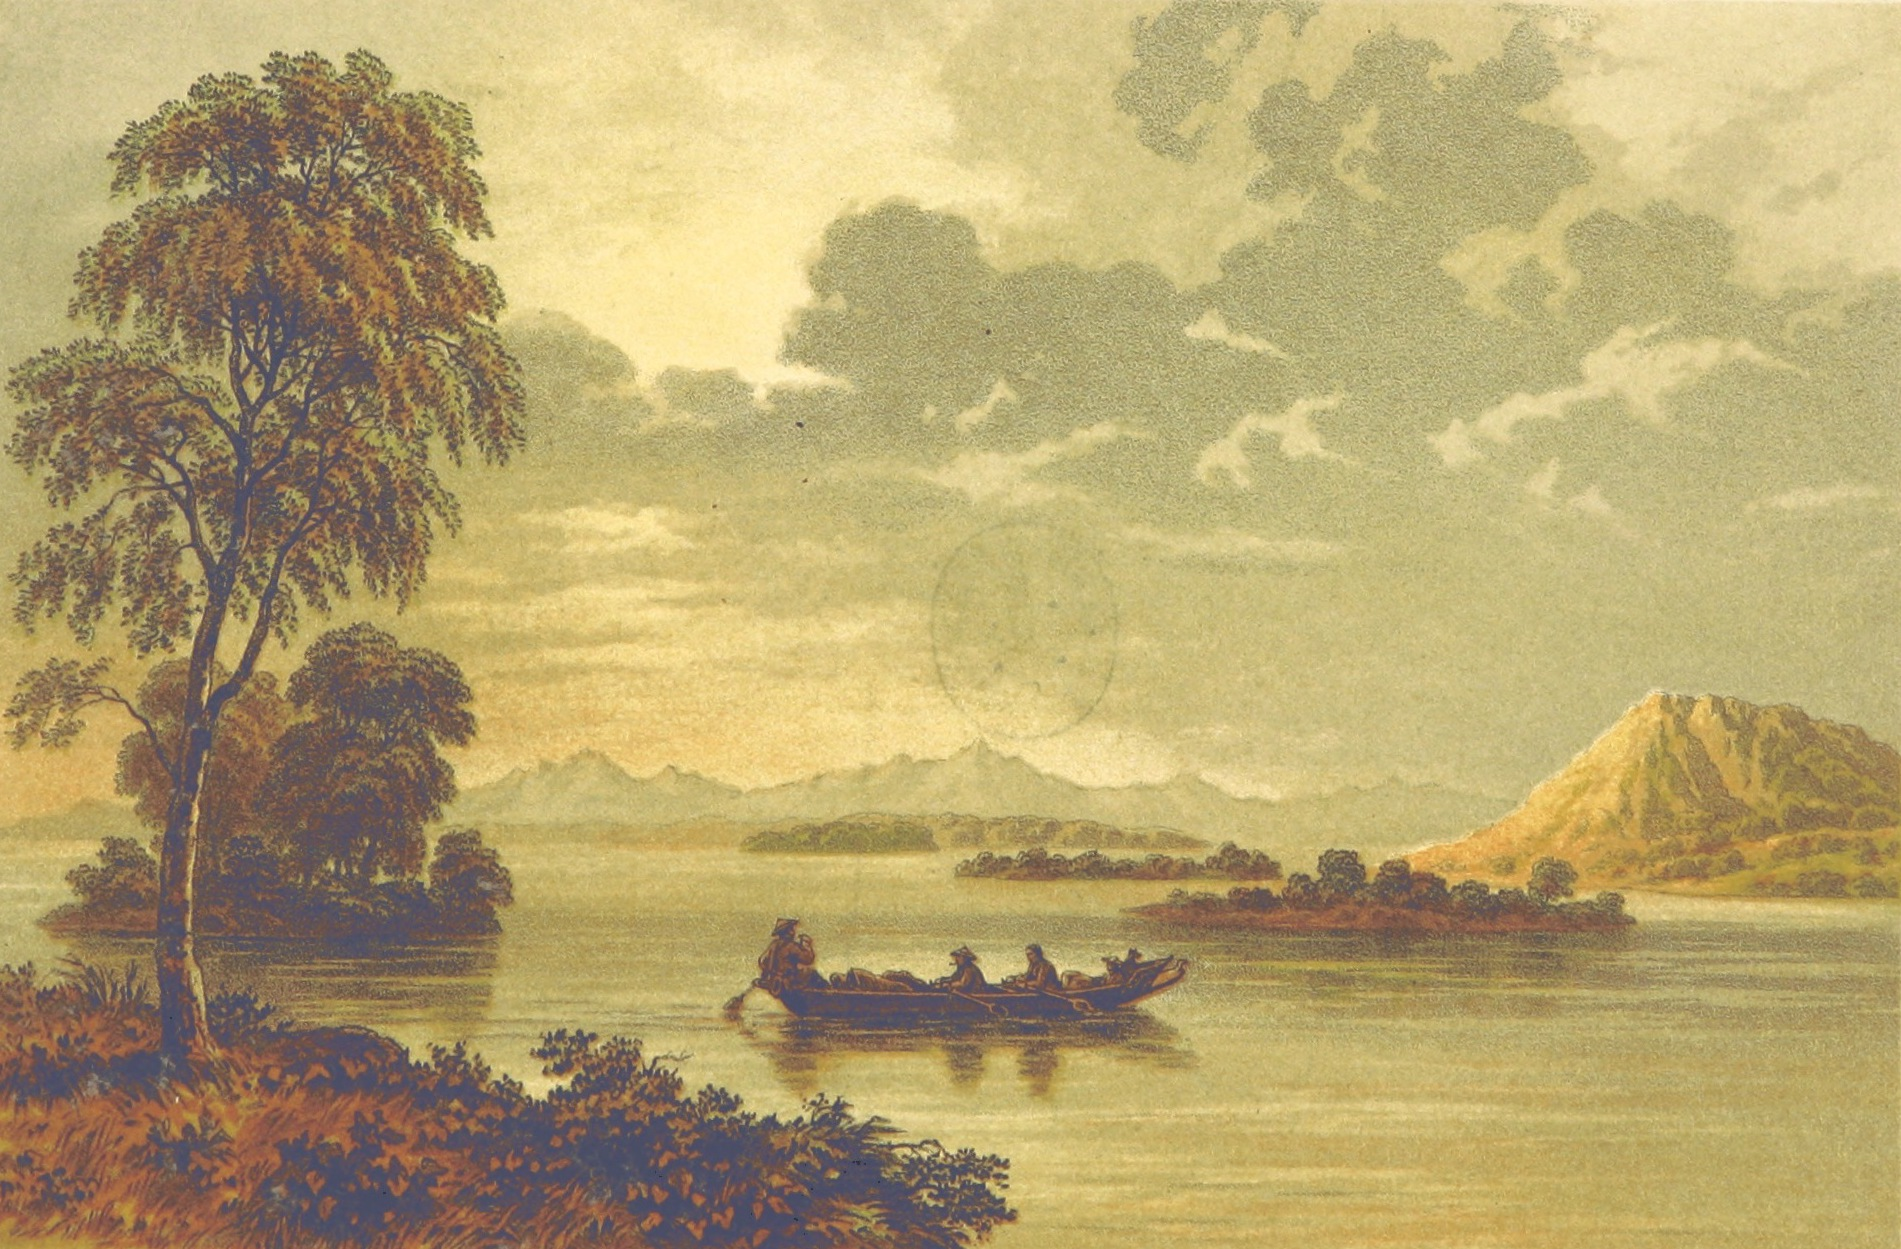 Travels in the Regions of the Upper and Lower Amoor - A view on the Amoor (1860)